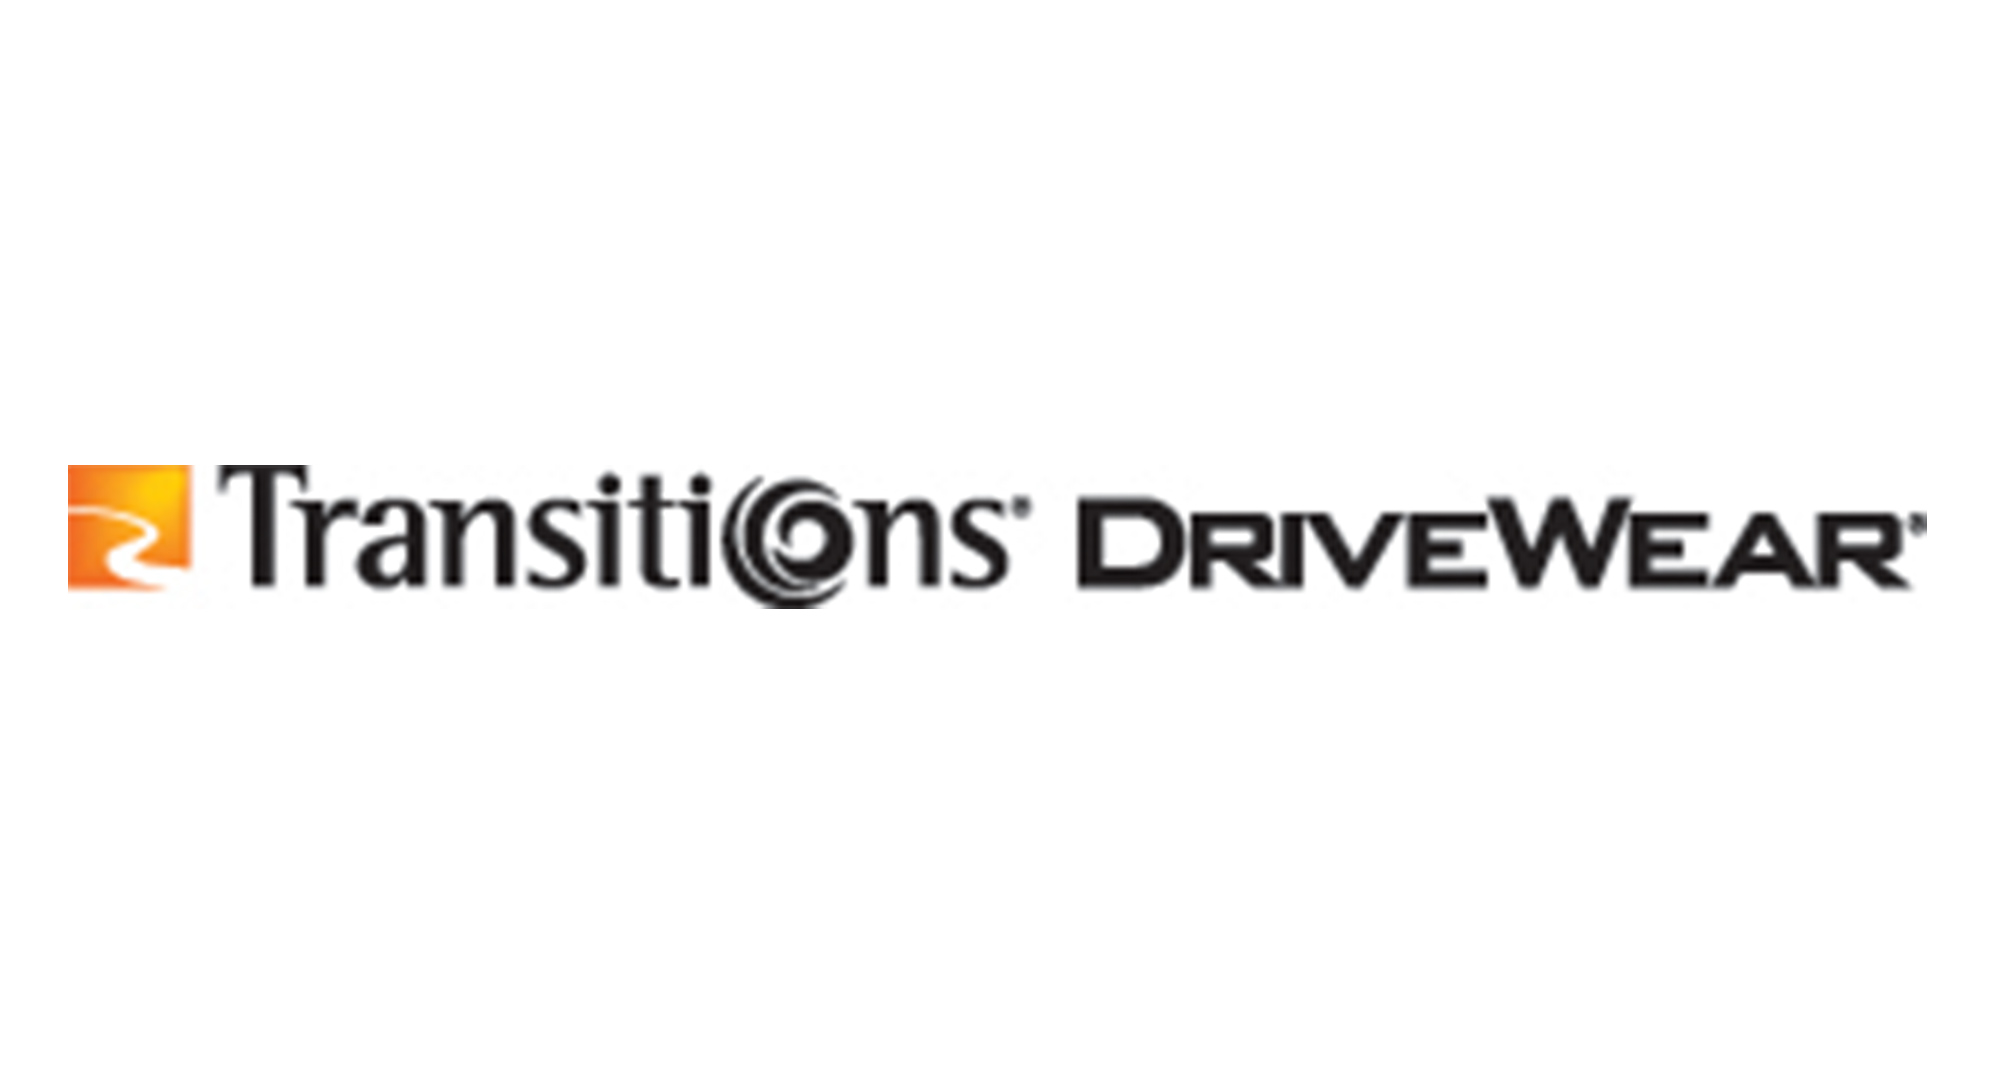 Transitions Drivewear Logo